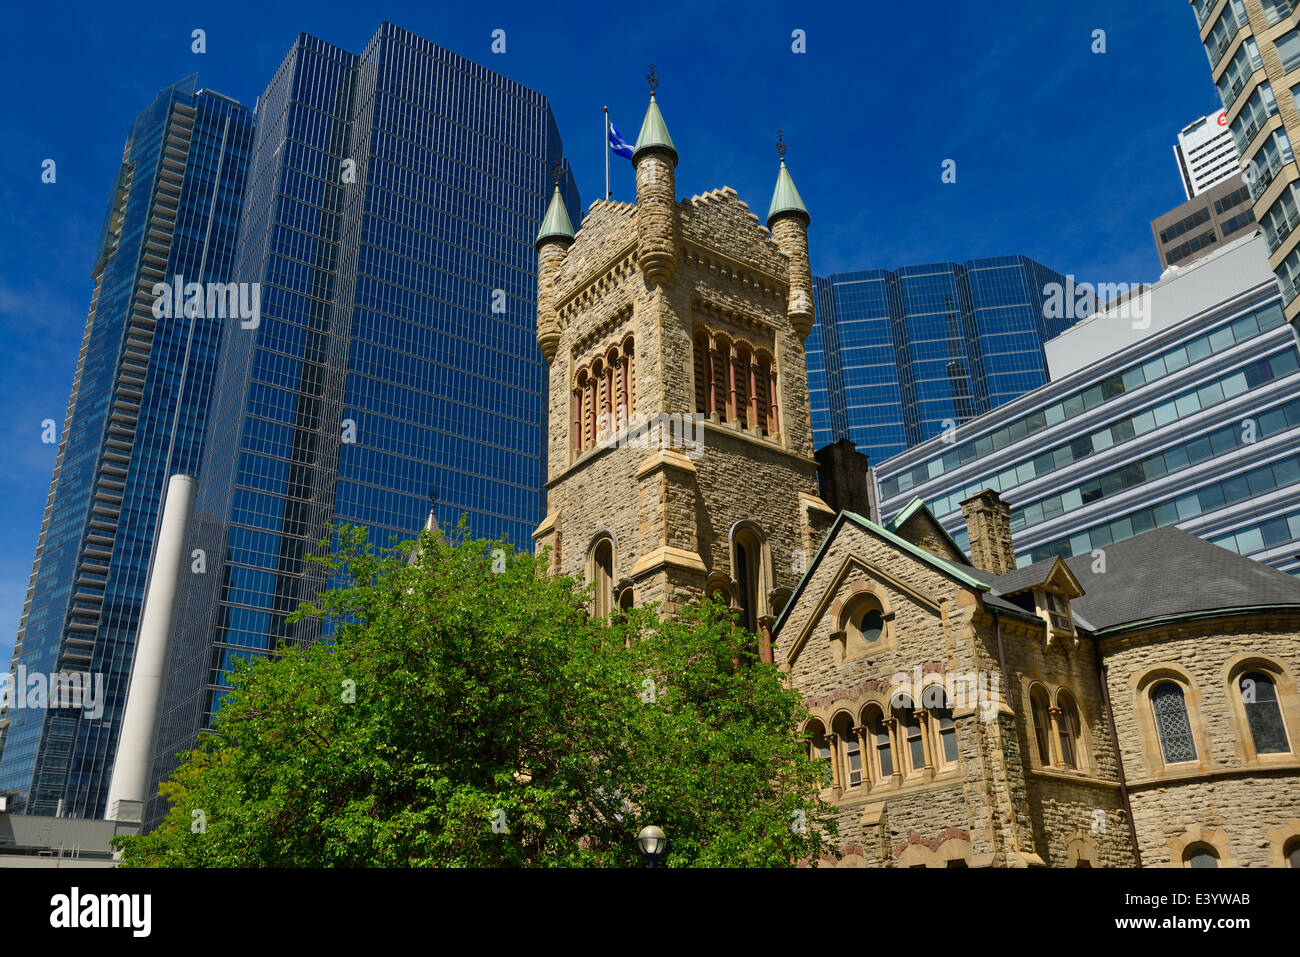 Old St Andrews presbyterian church against modern glass highrise office towers in Toronto - Stock Image